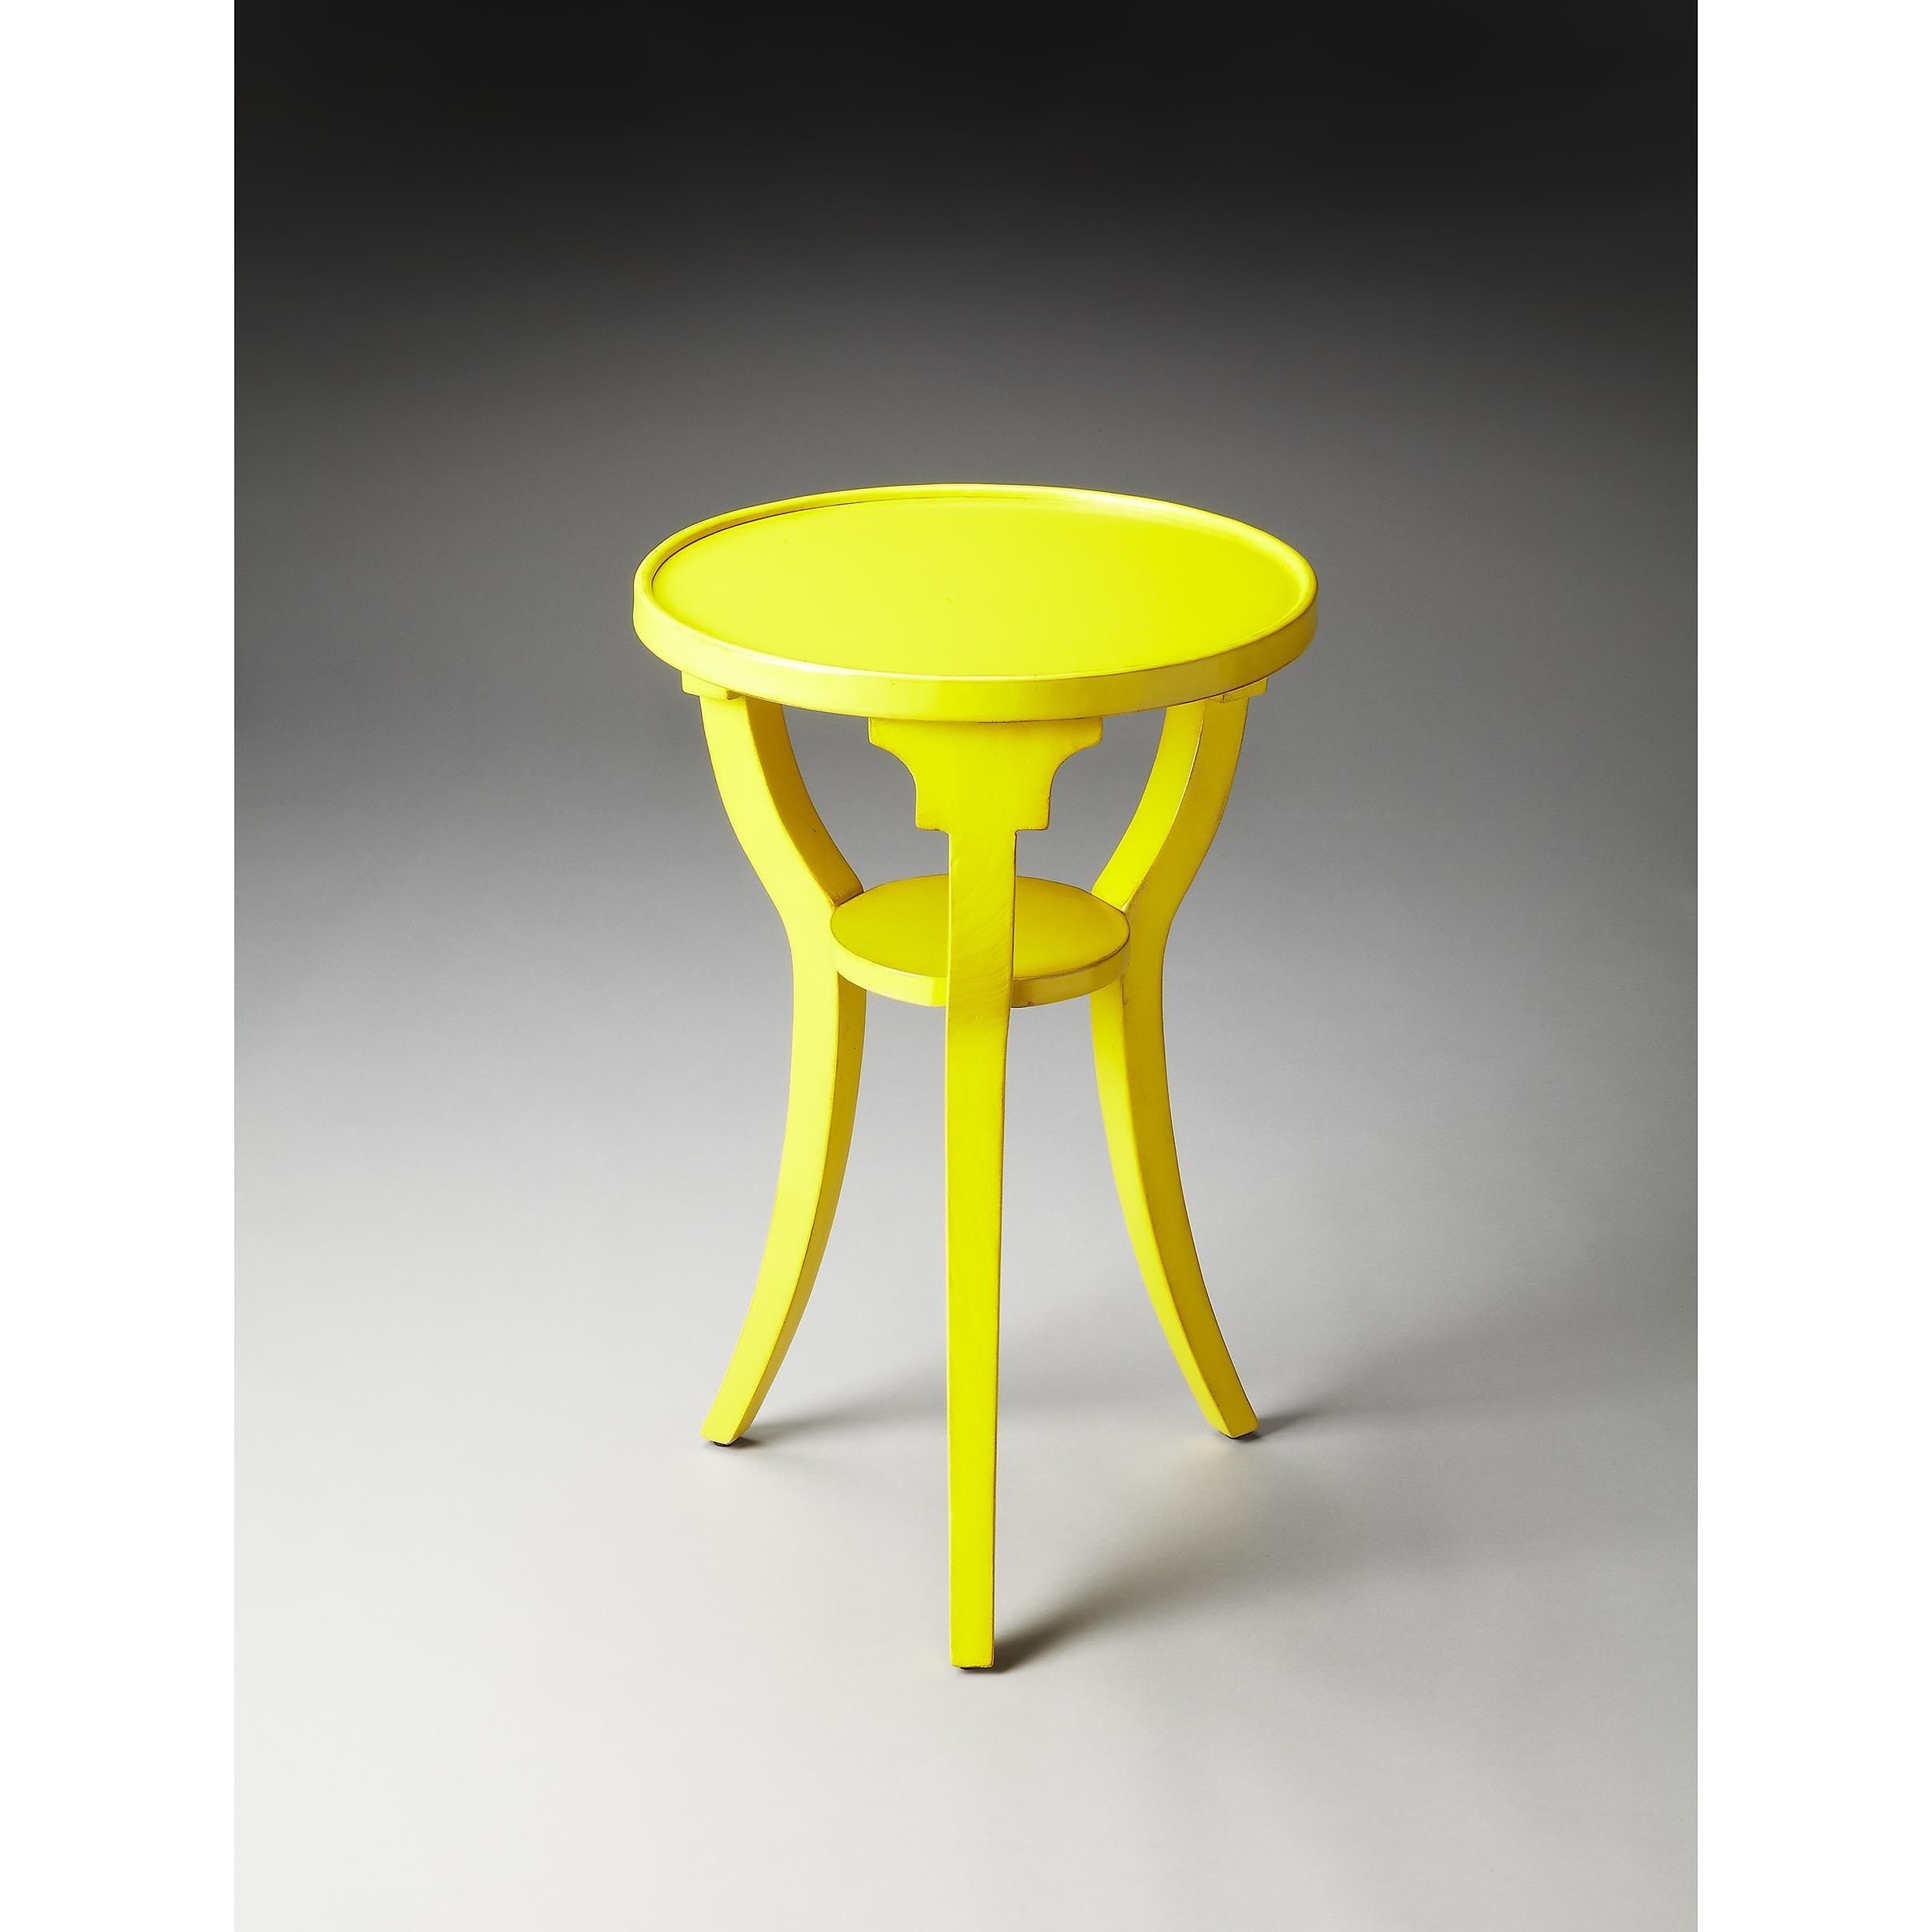 Butler Dalton Bright Wood and Round Accent Table